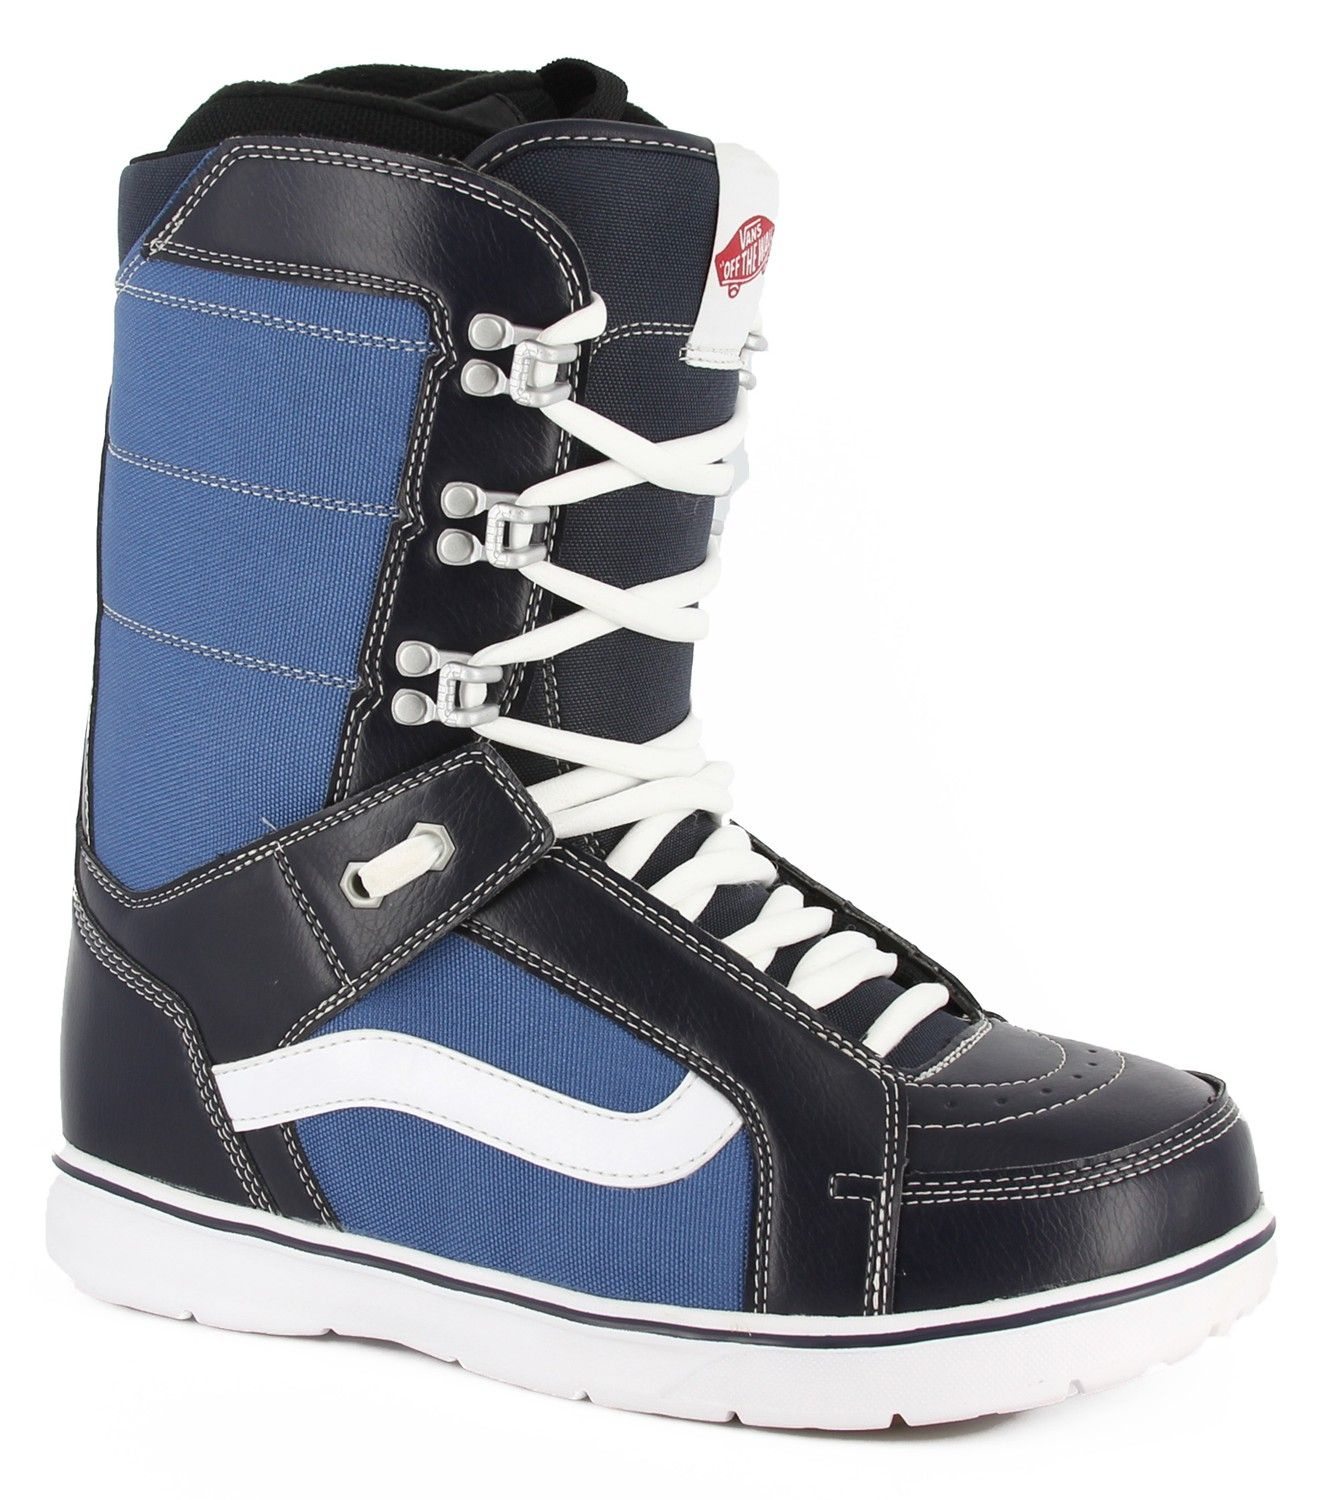 0d3f795815aded Vans snow boots in the Old Skool style.